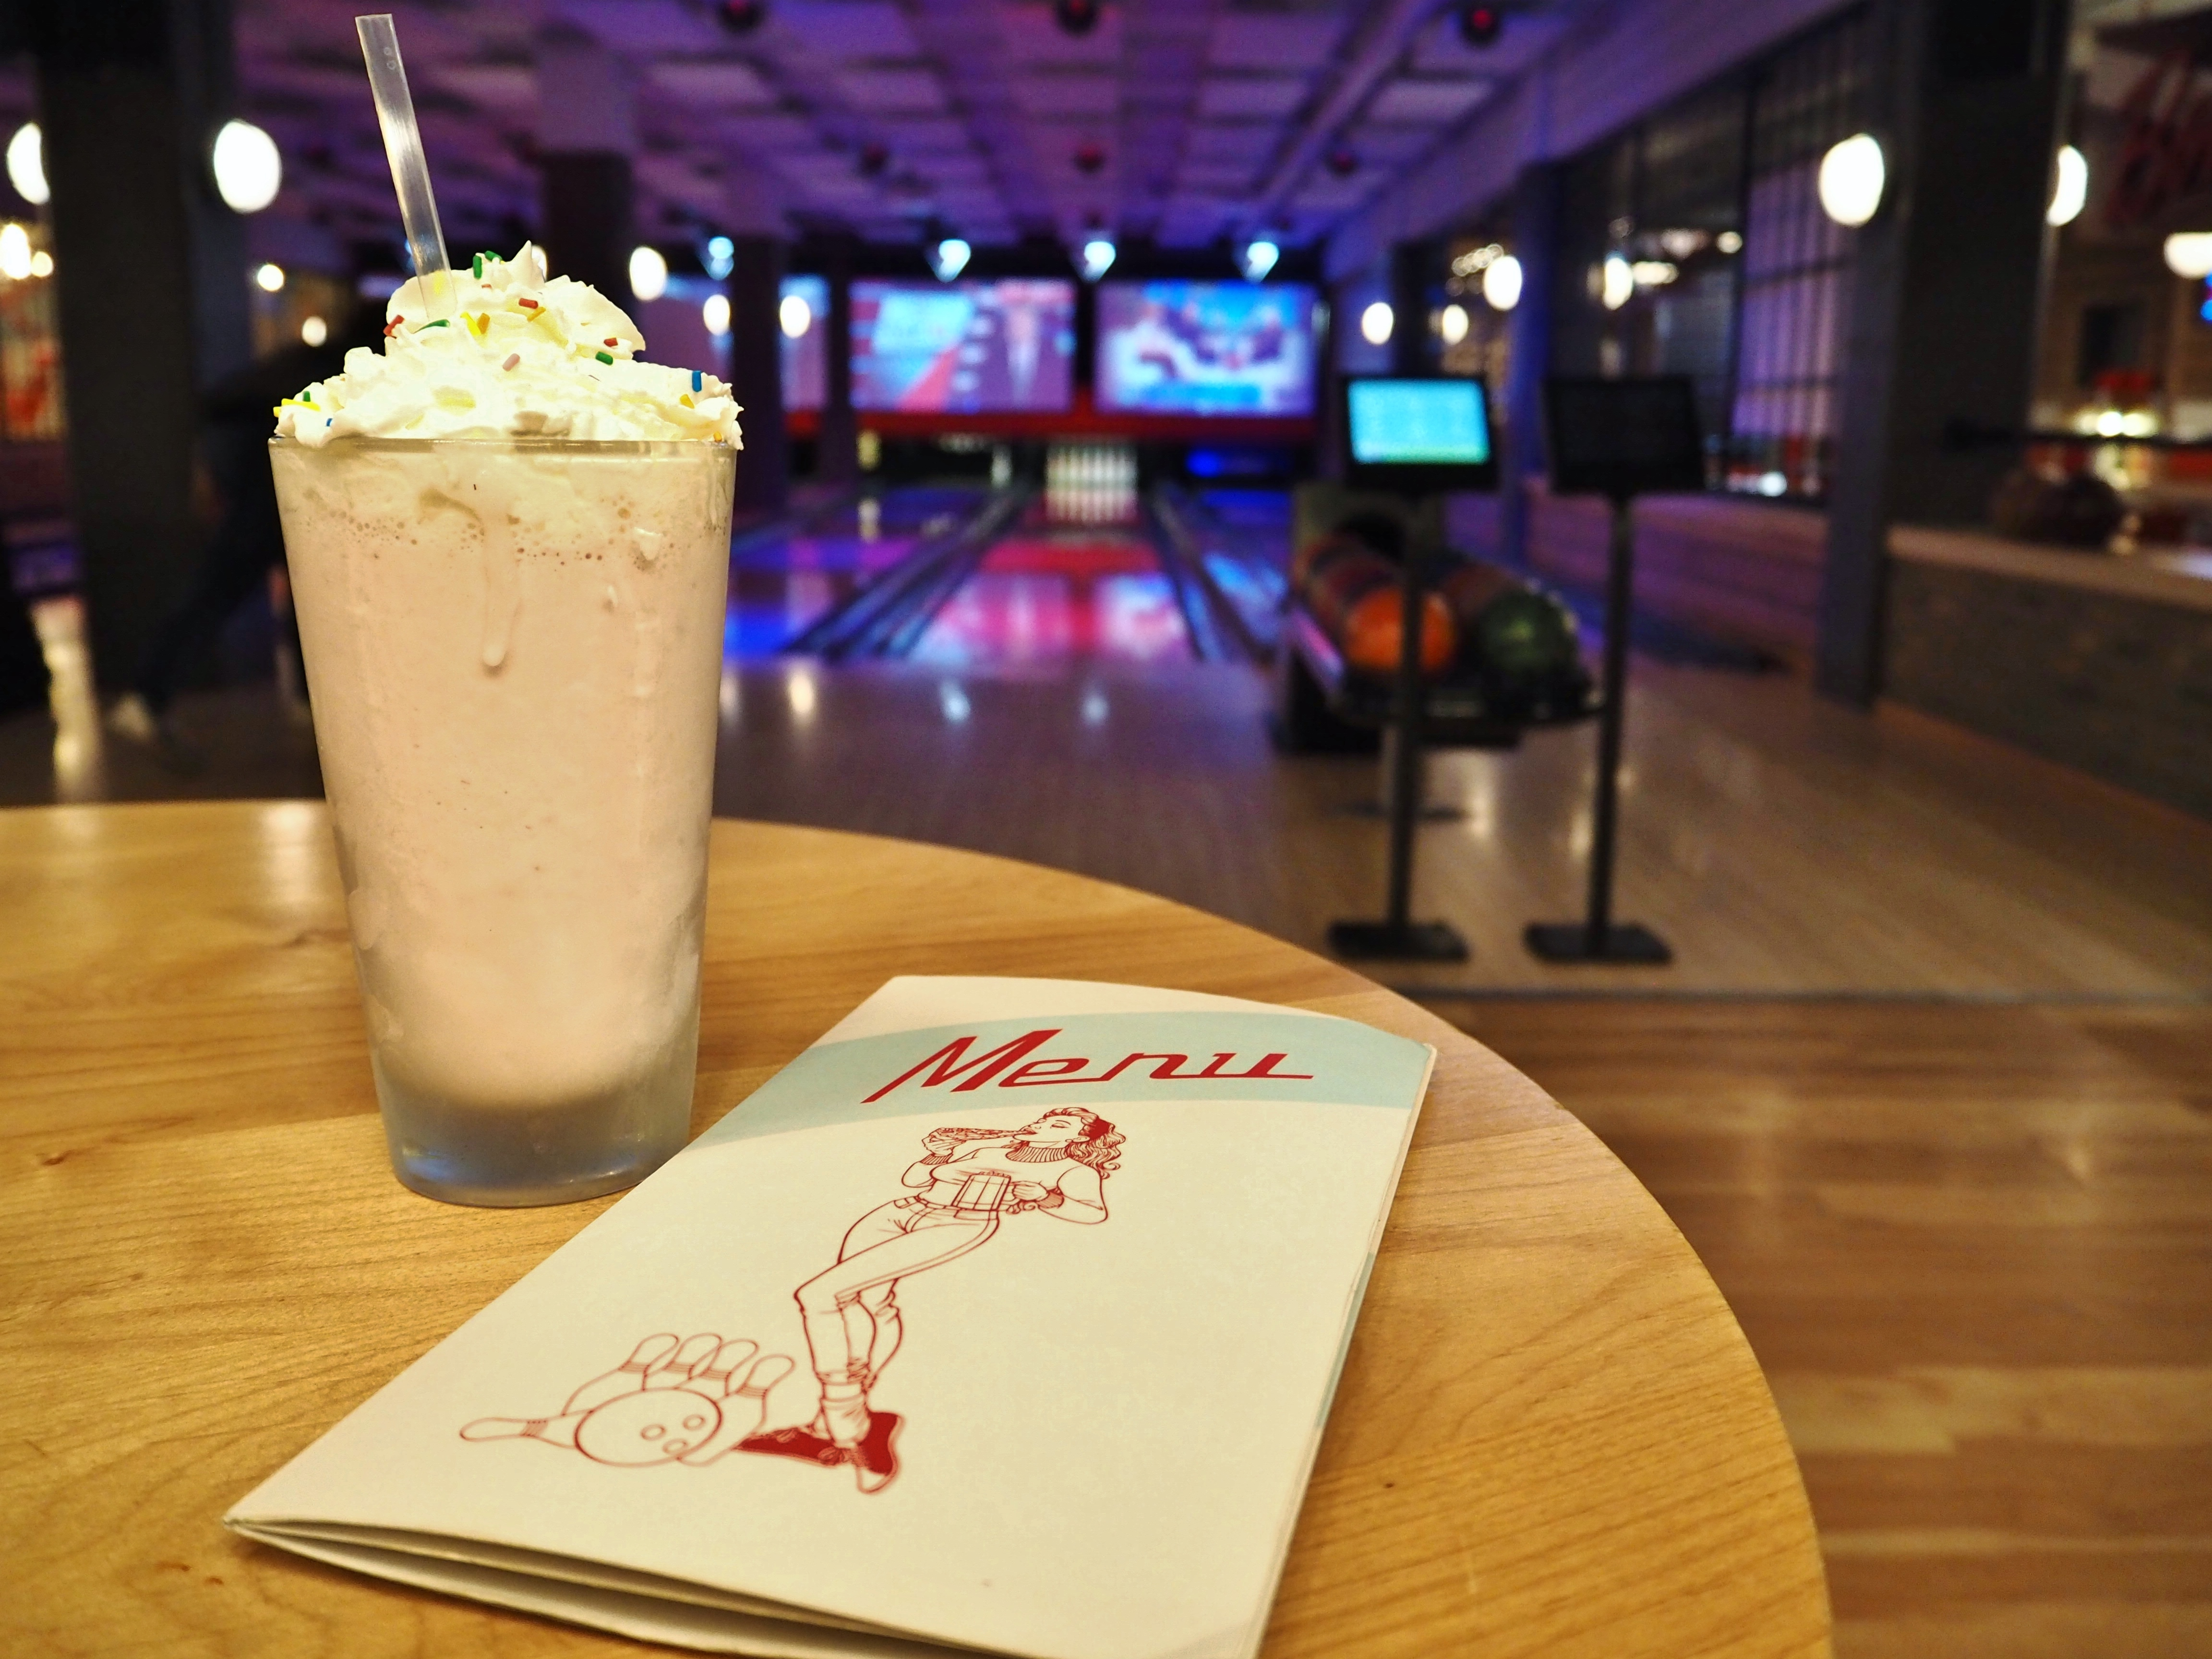 Have a spare afternoon in Banff? Go bowling at High Rollers!